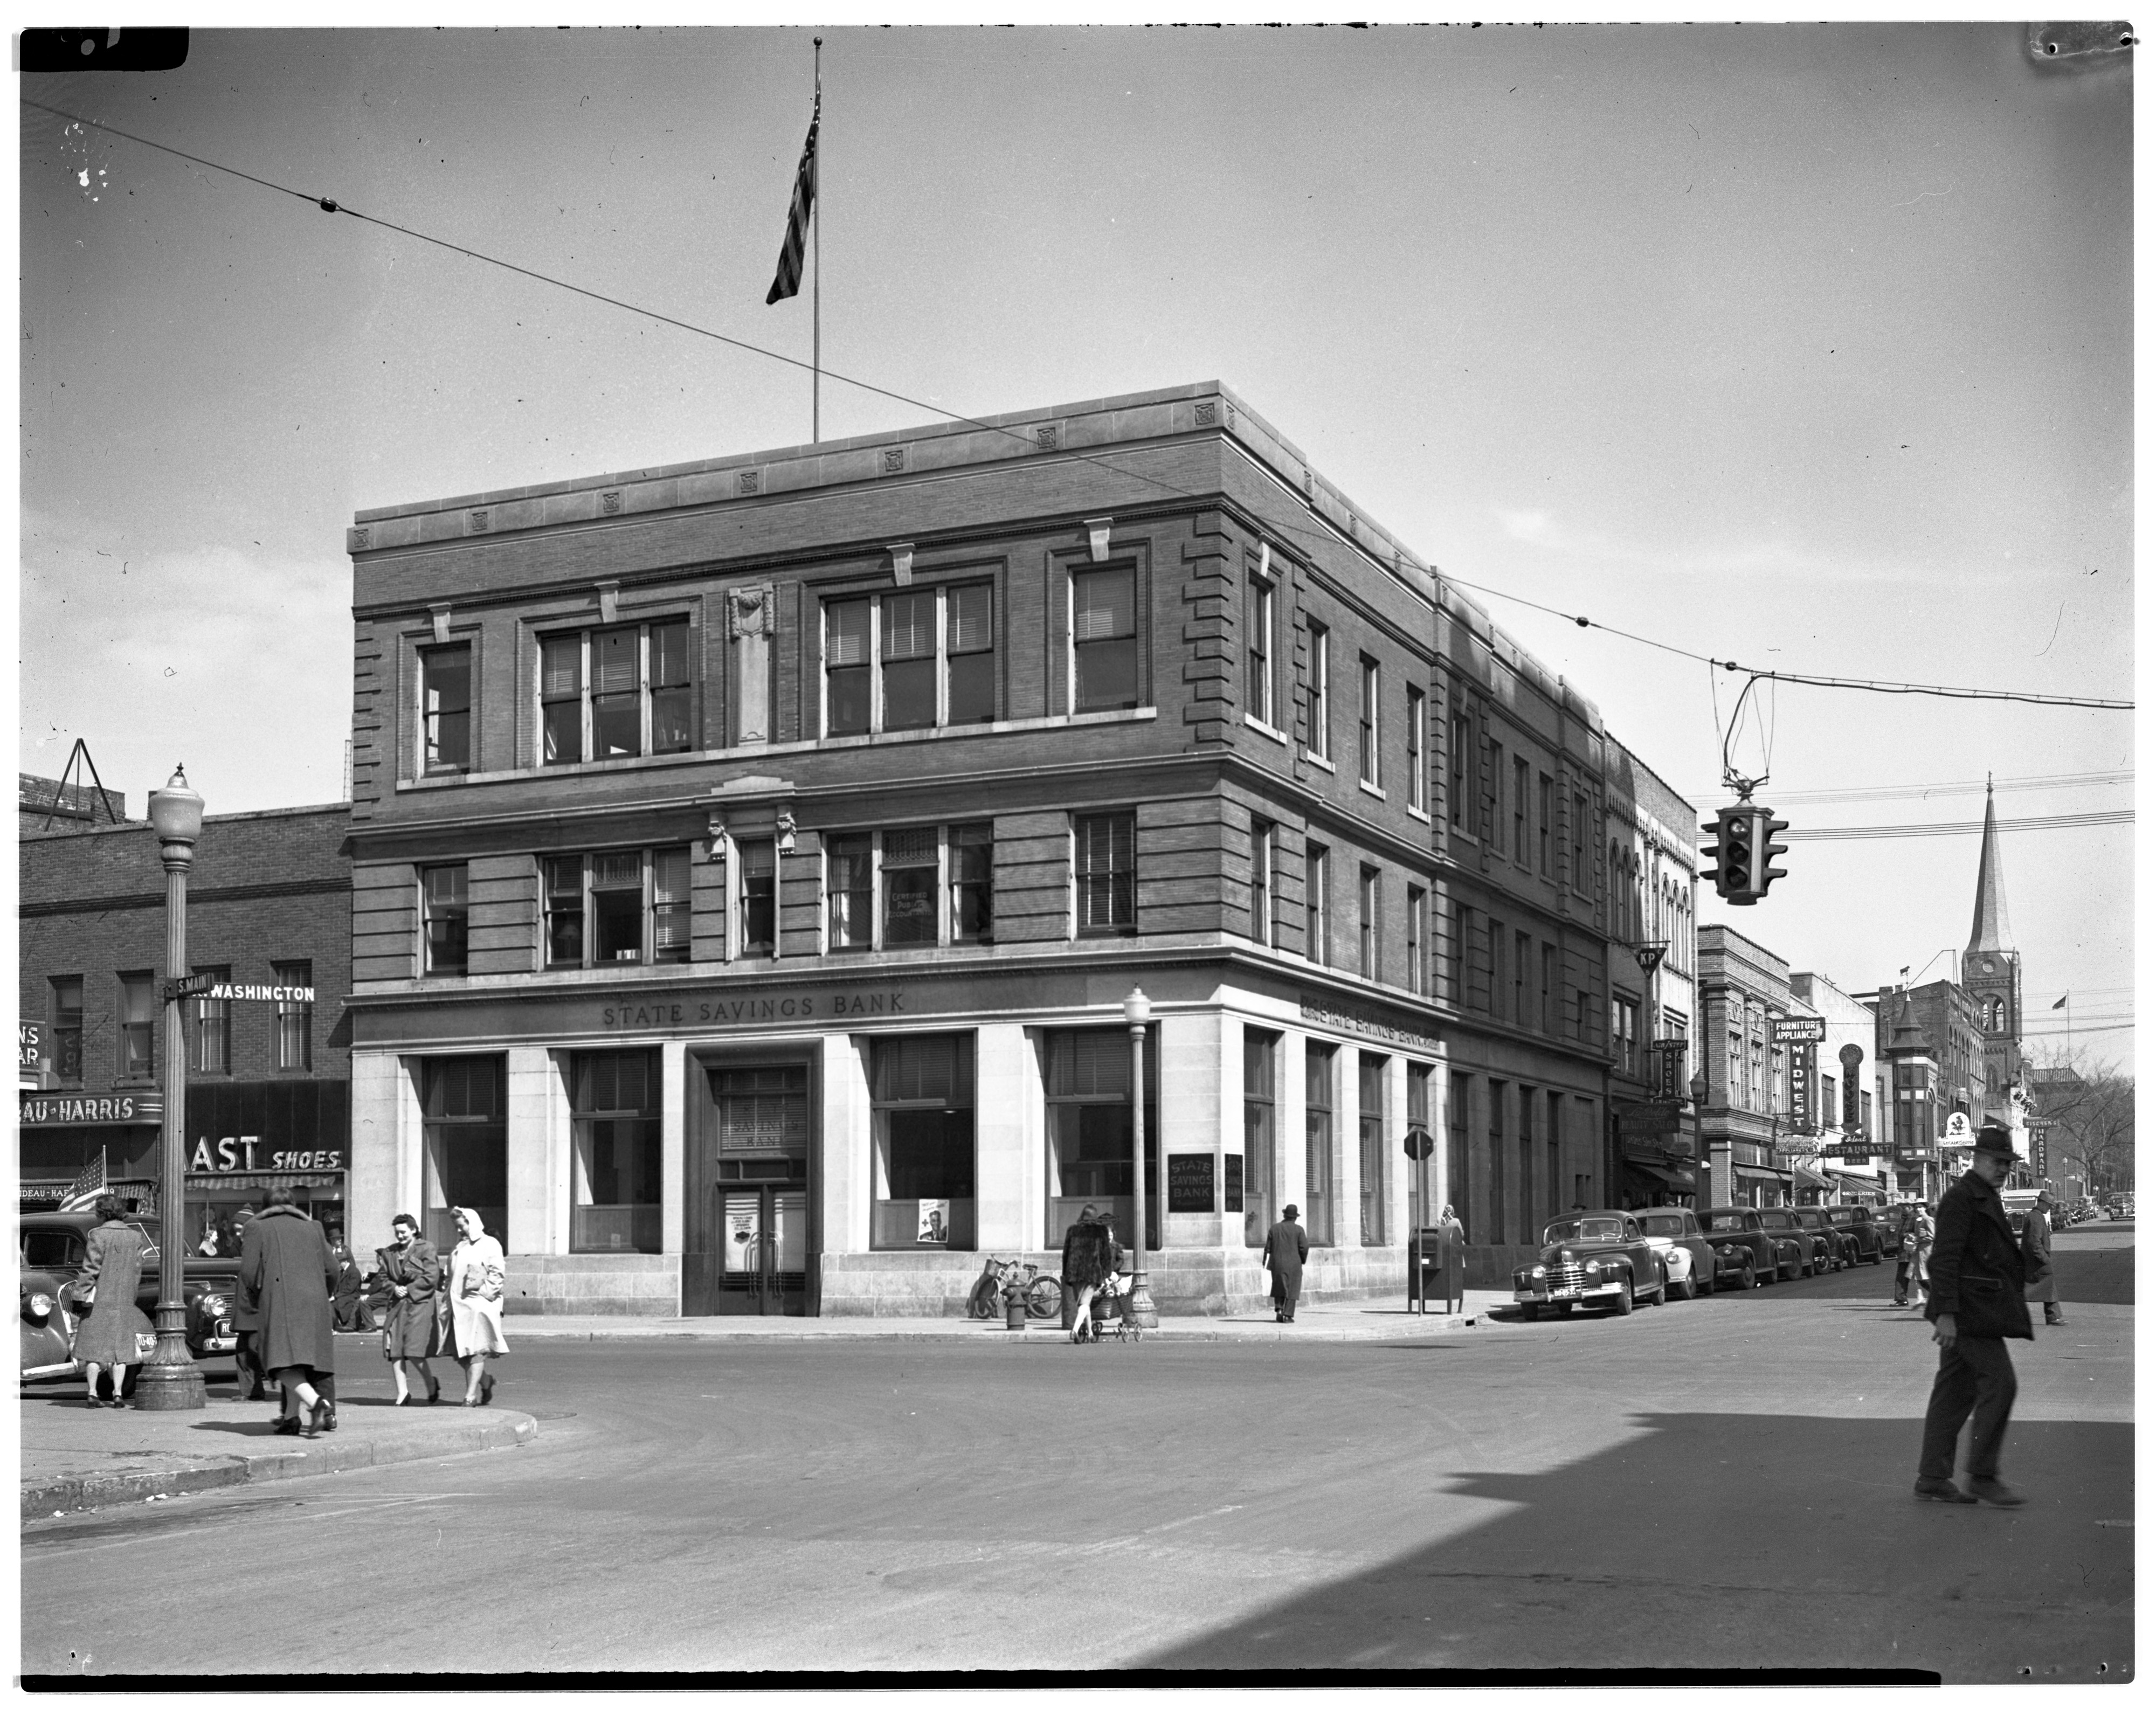 Image from State Savings Bank, March 1943